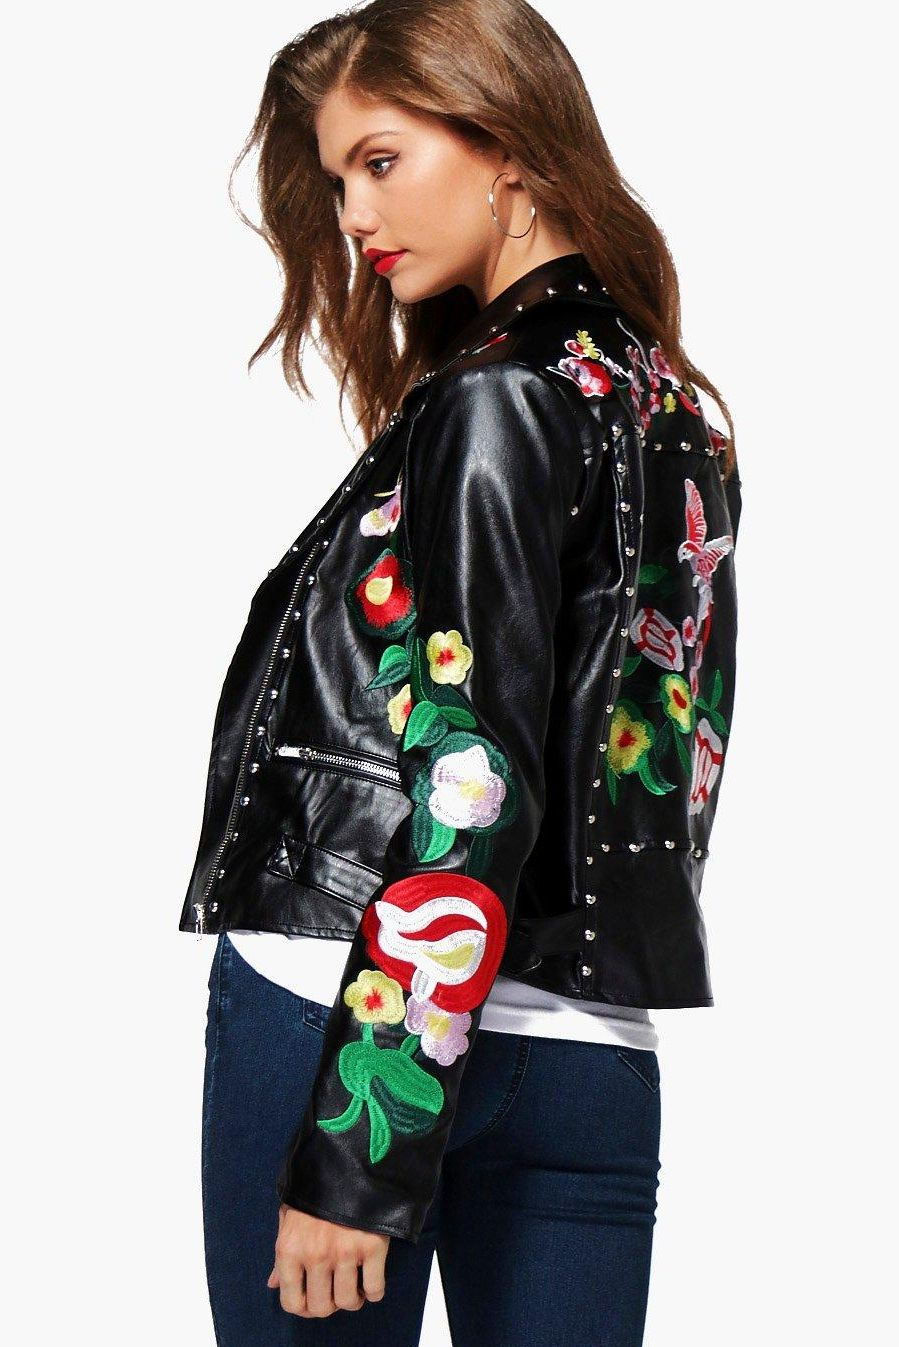 9a6369661c75 10 Cute Leather Jacket Outfit Ideas - How to Wear a Leather Jacket